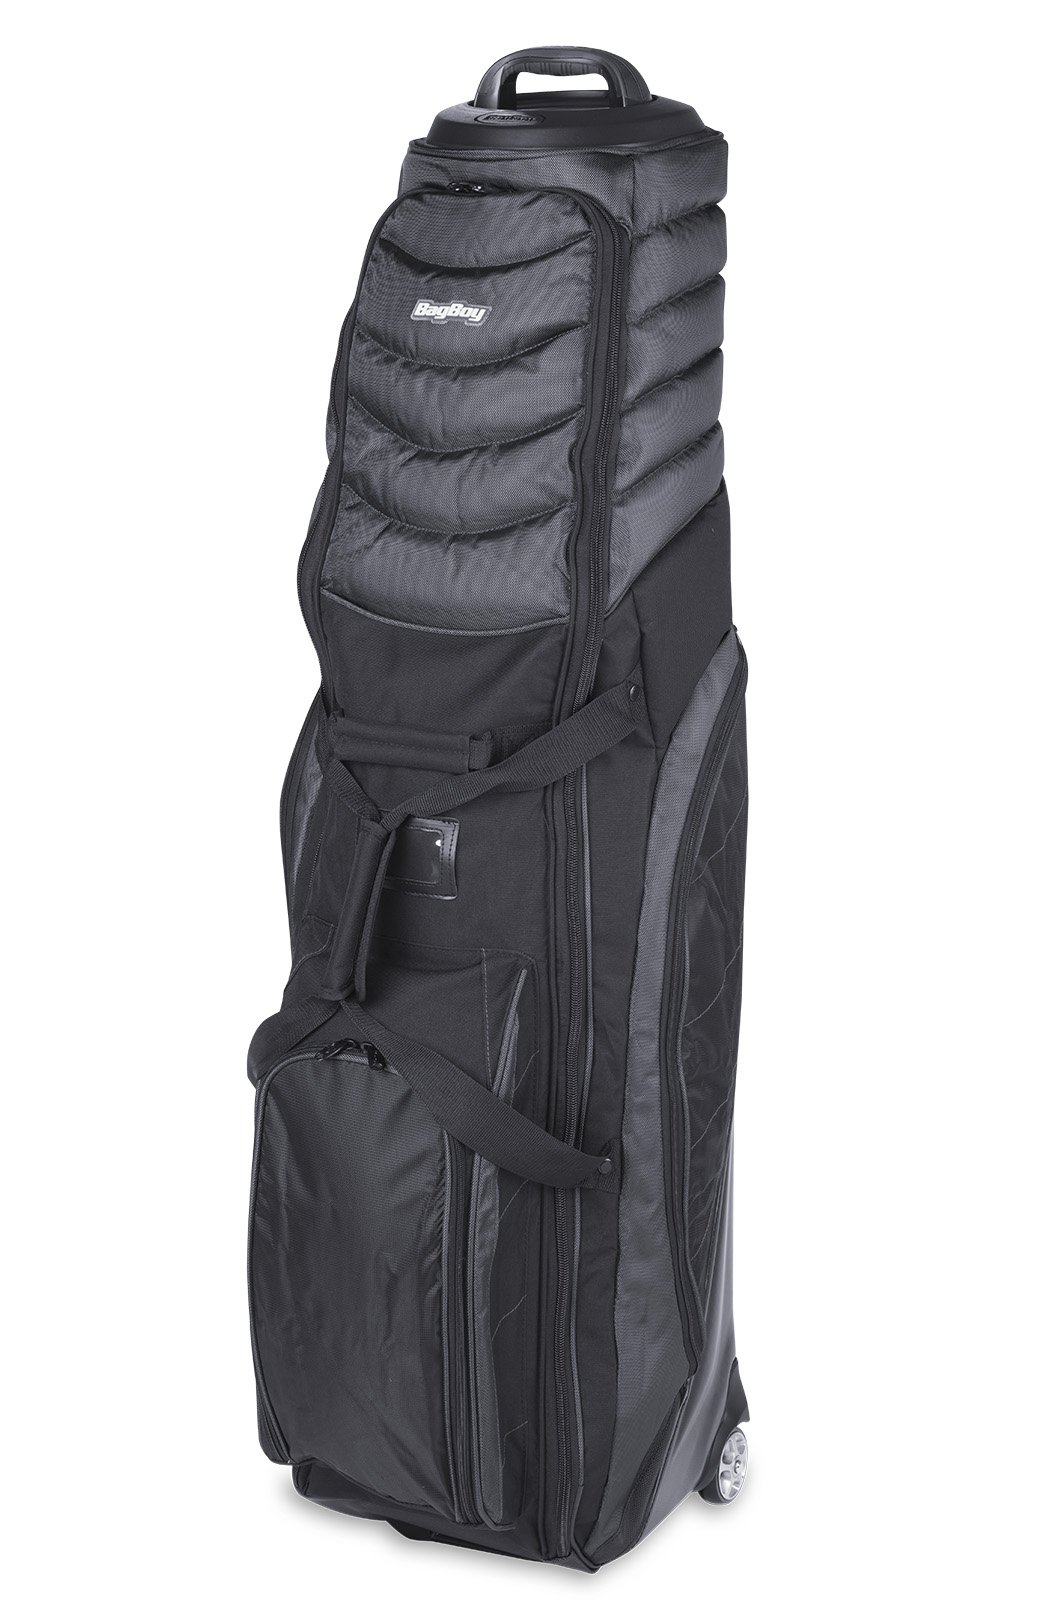 Bag Boy T-2000 Golf Travel Covers, Charcoal/Black